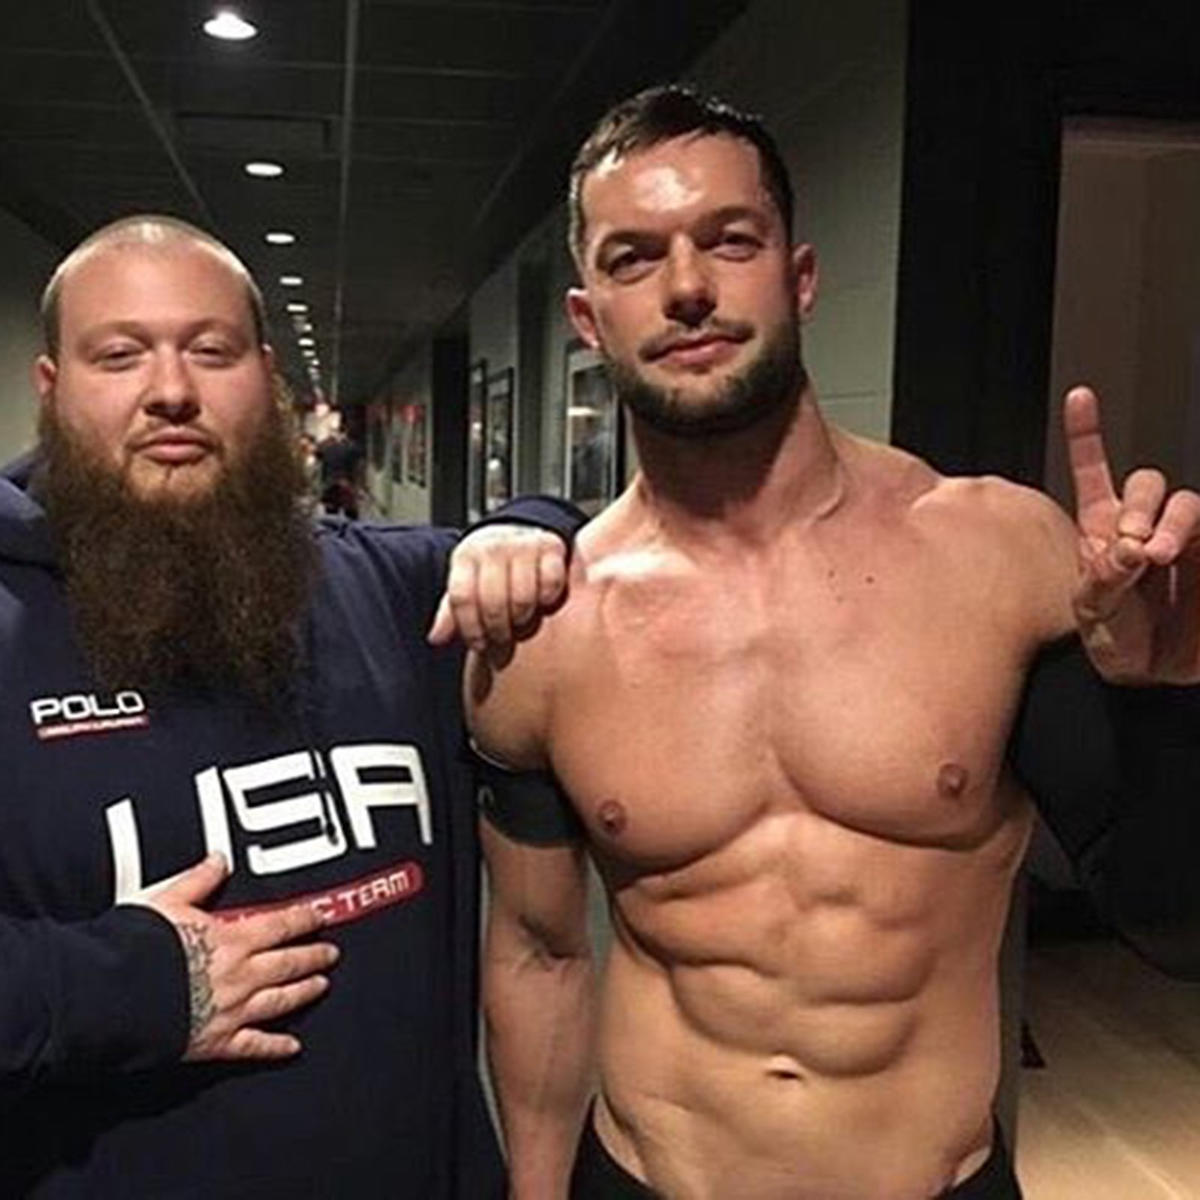 The 25 best Instagram photos of the week - April 16, 2017 | WWE